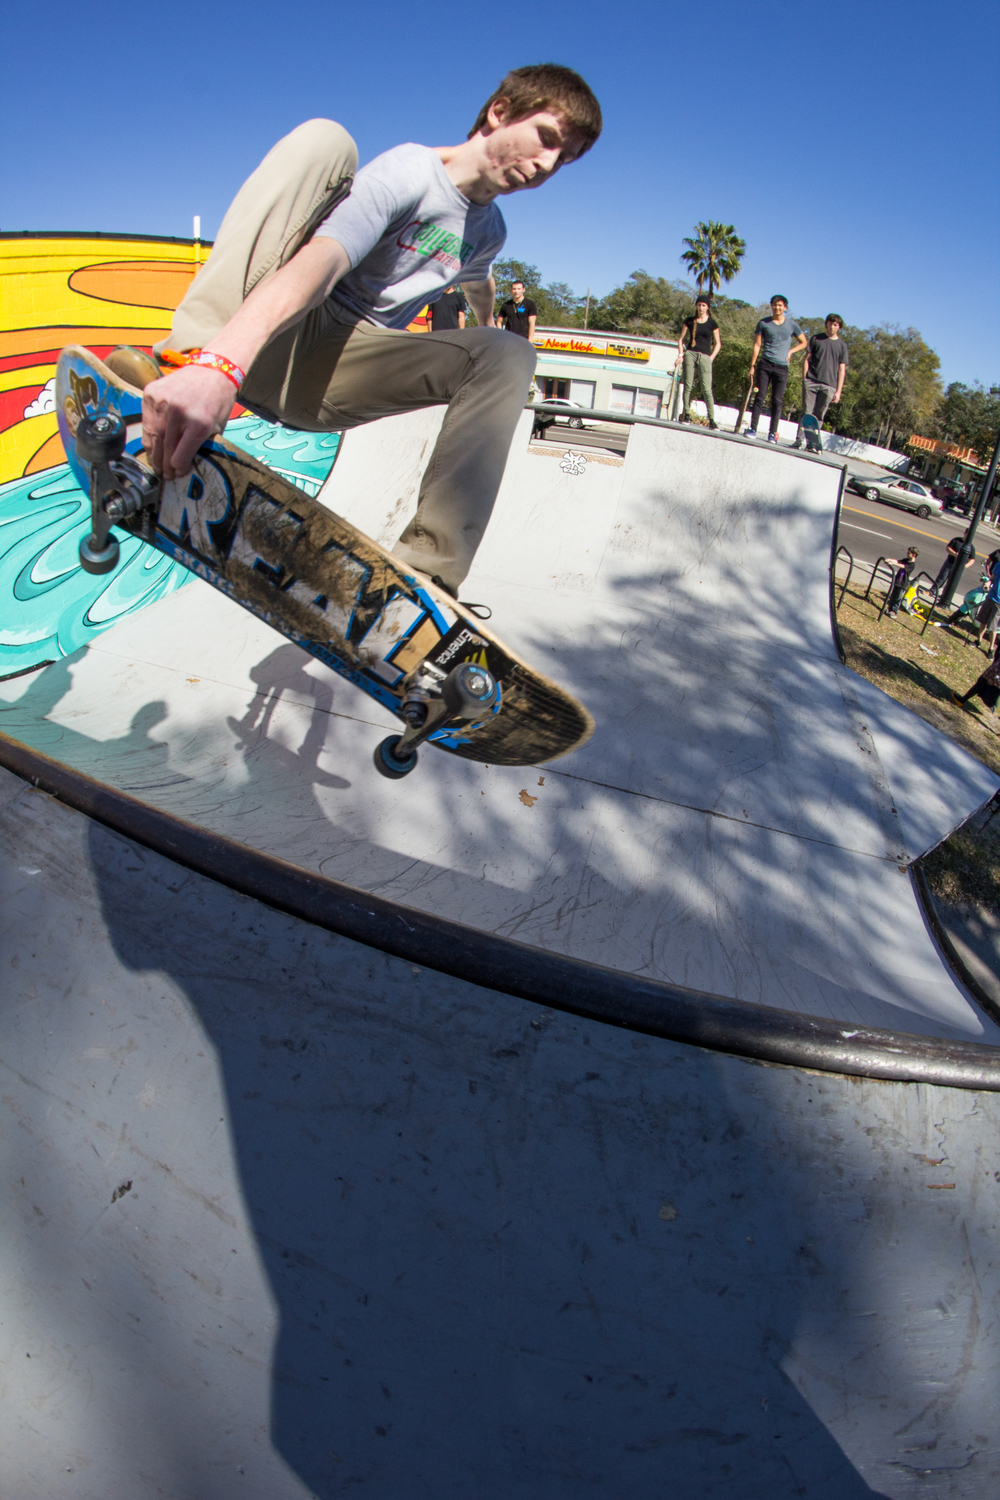 chris hatten fakie 360 grab.jpg